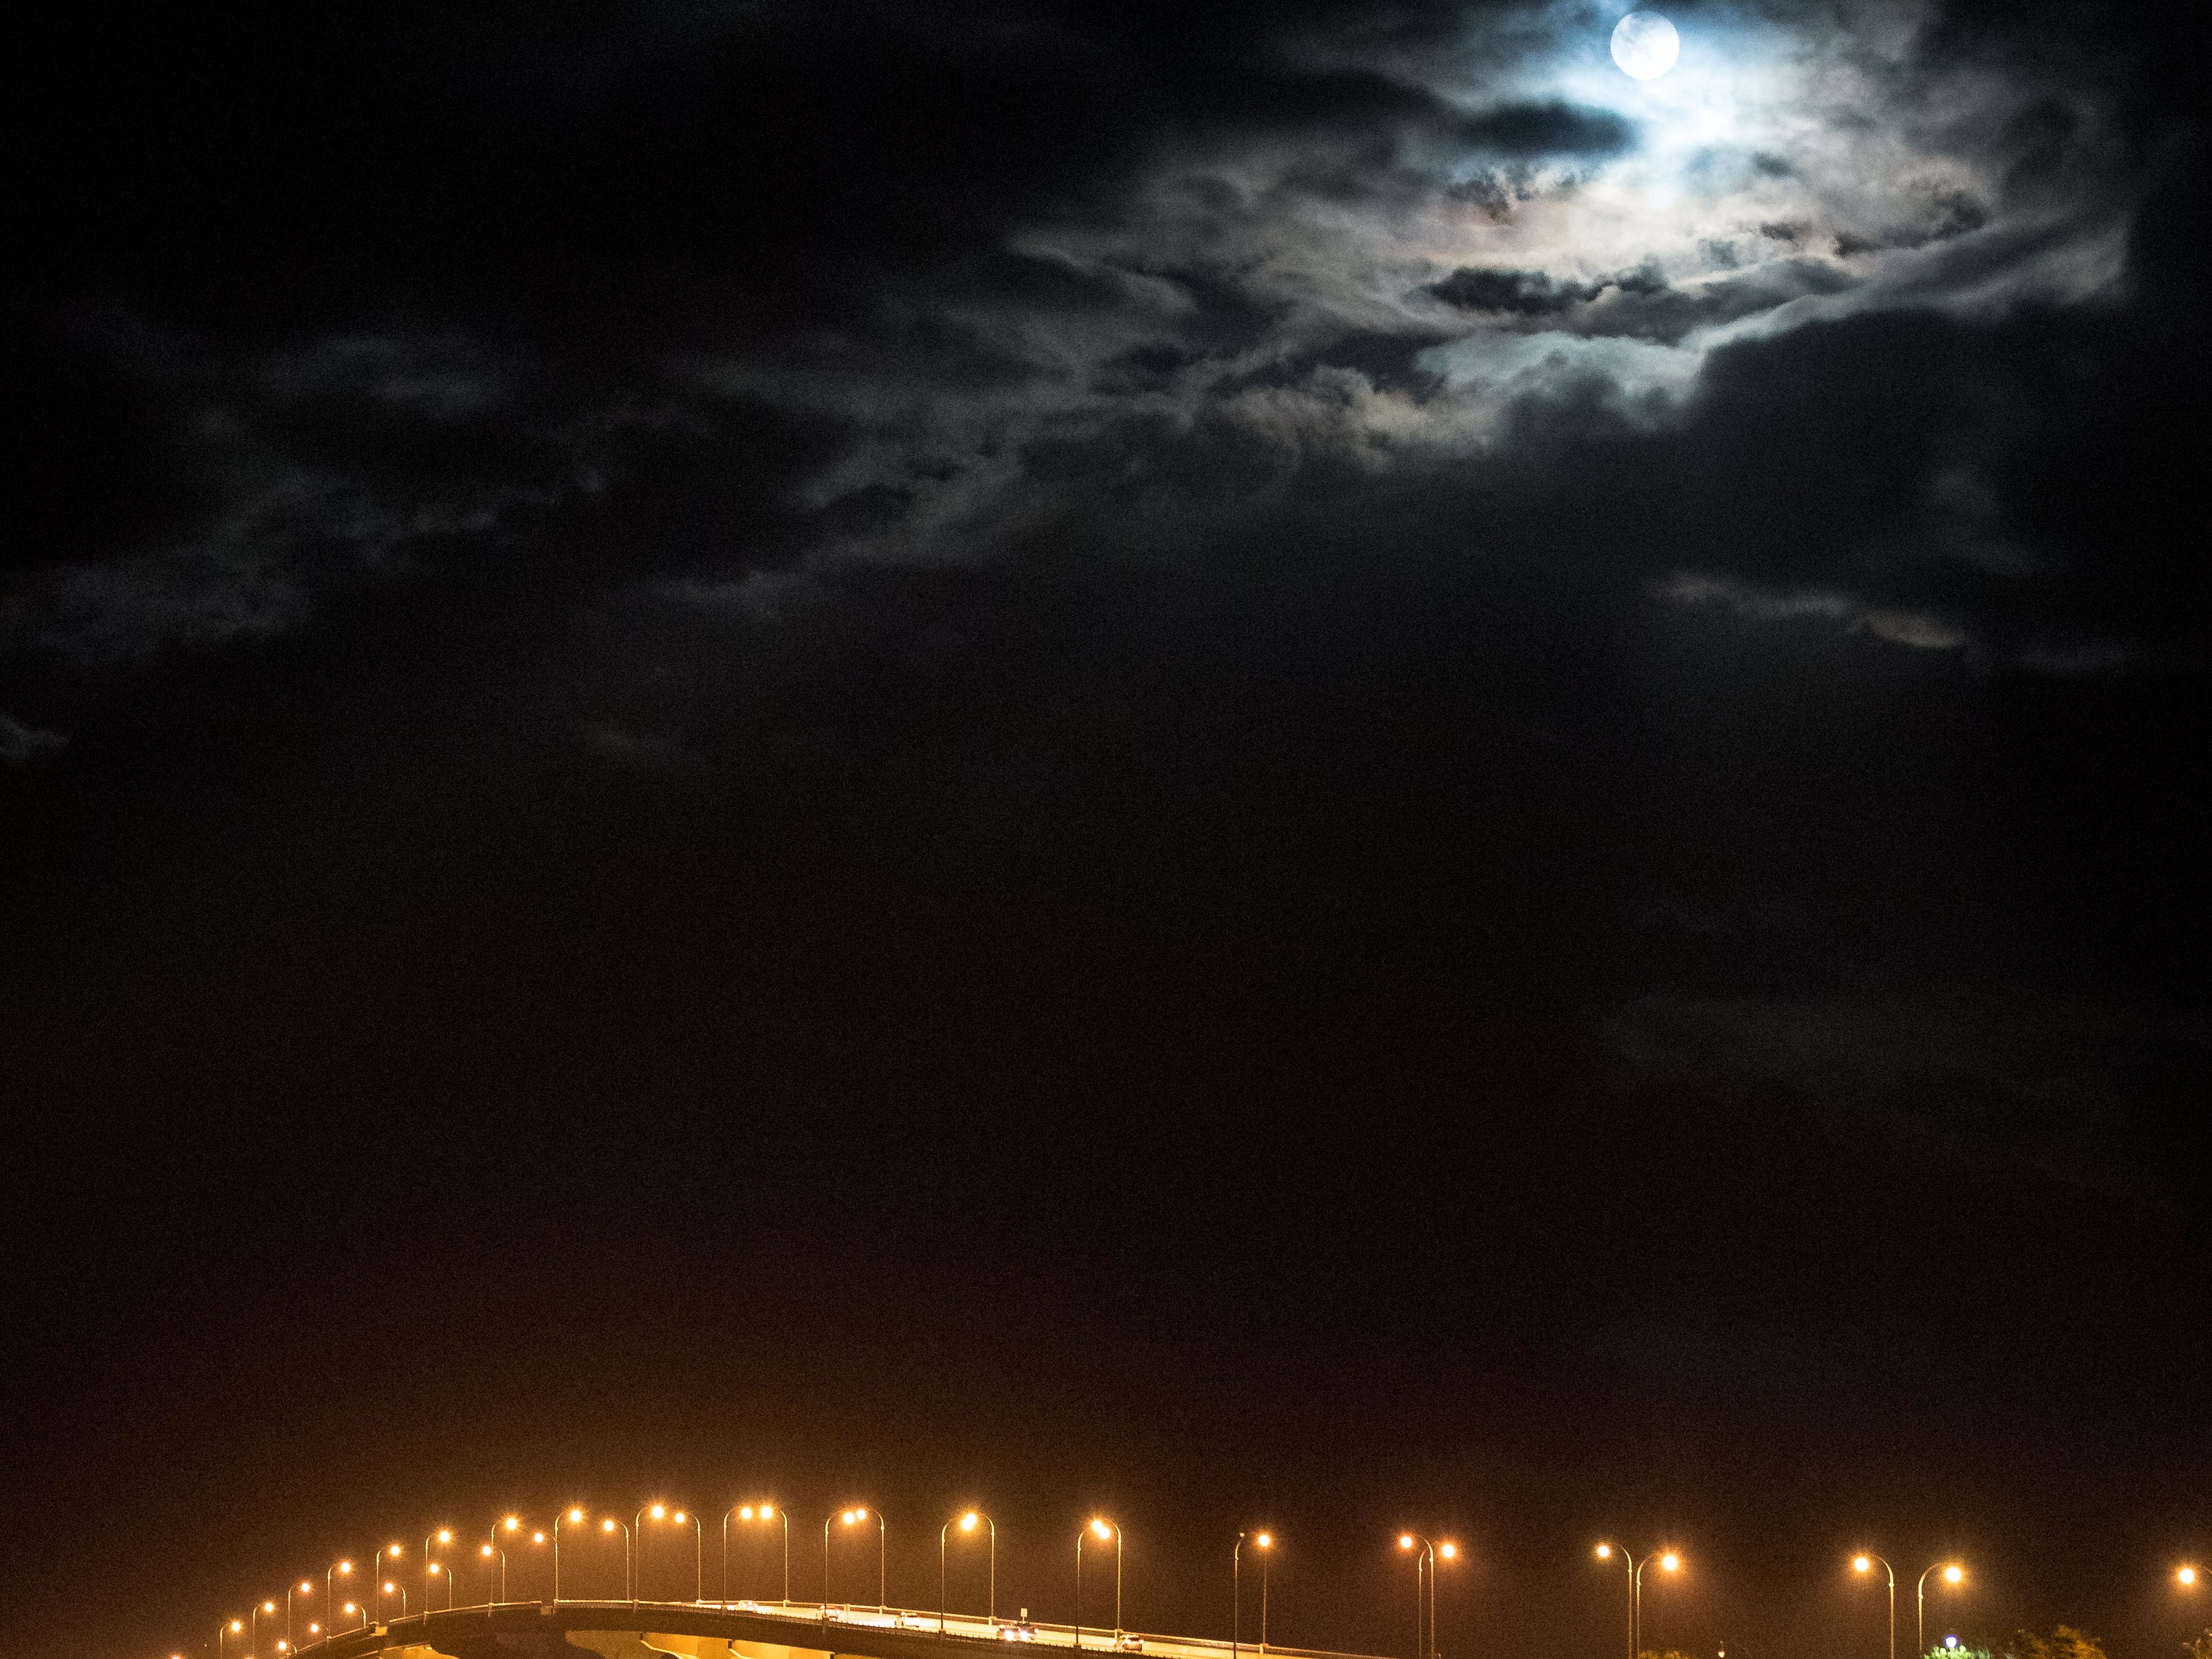 """The last supermoon of 2019, the """"super worm equinox moon,"""" is seen over the Jensen Beach Causeway through an overcast night sky on the vernal equinox Wednesday, March 20, 2019, in Jensen Beach. The next supermoon will not occur until March 2020."""